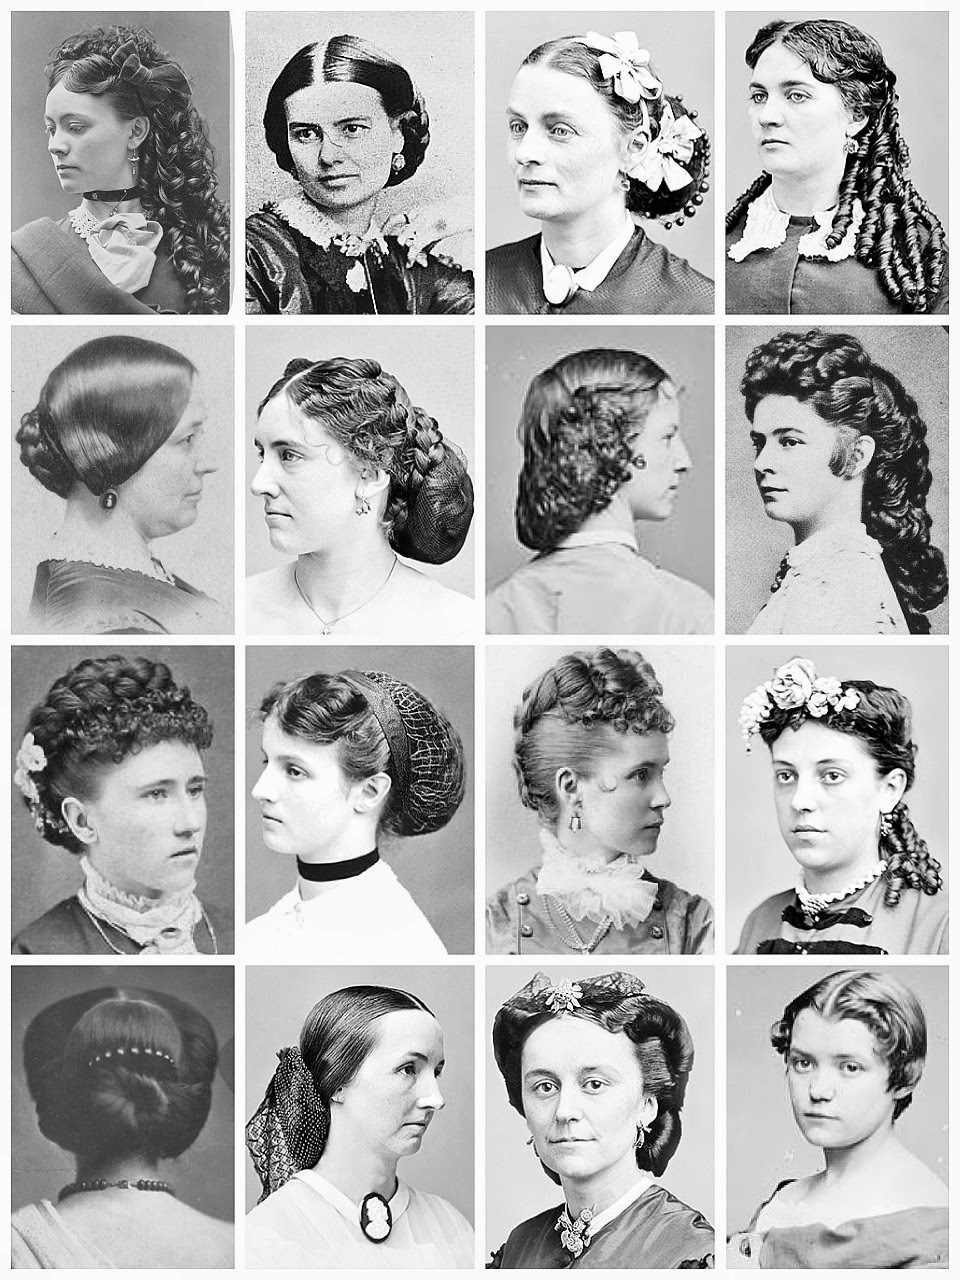 Victorian Era Hairstyles With Curls | hairstylegalleries.com